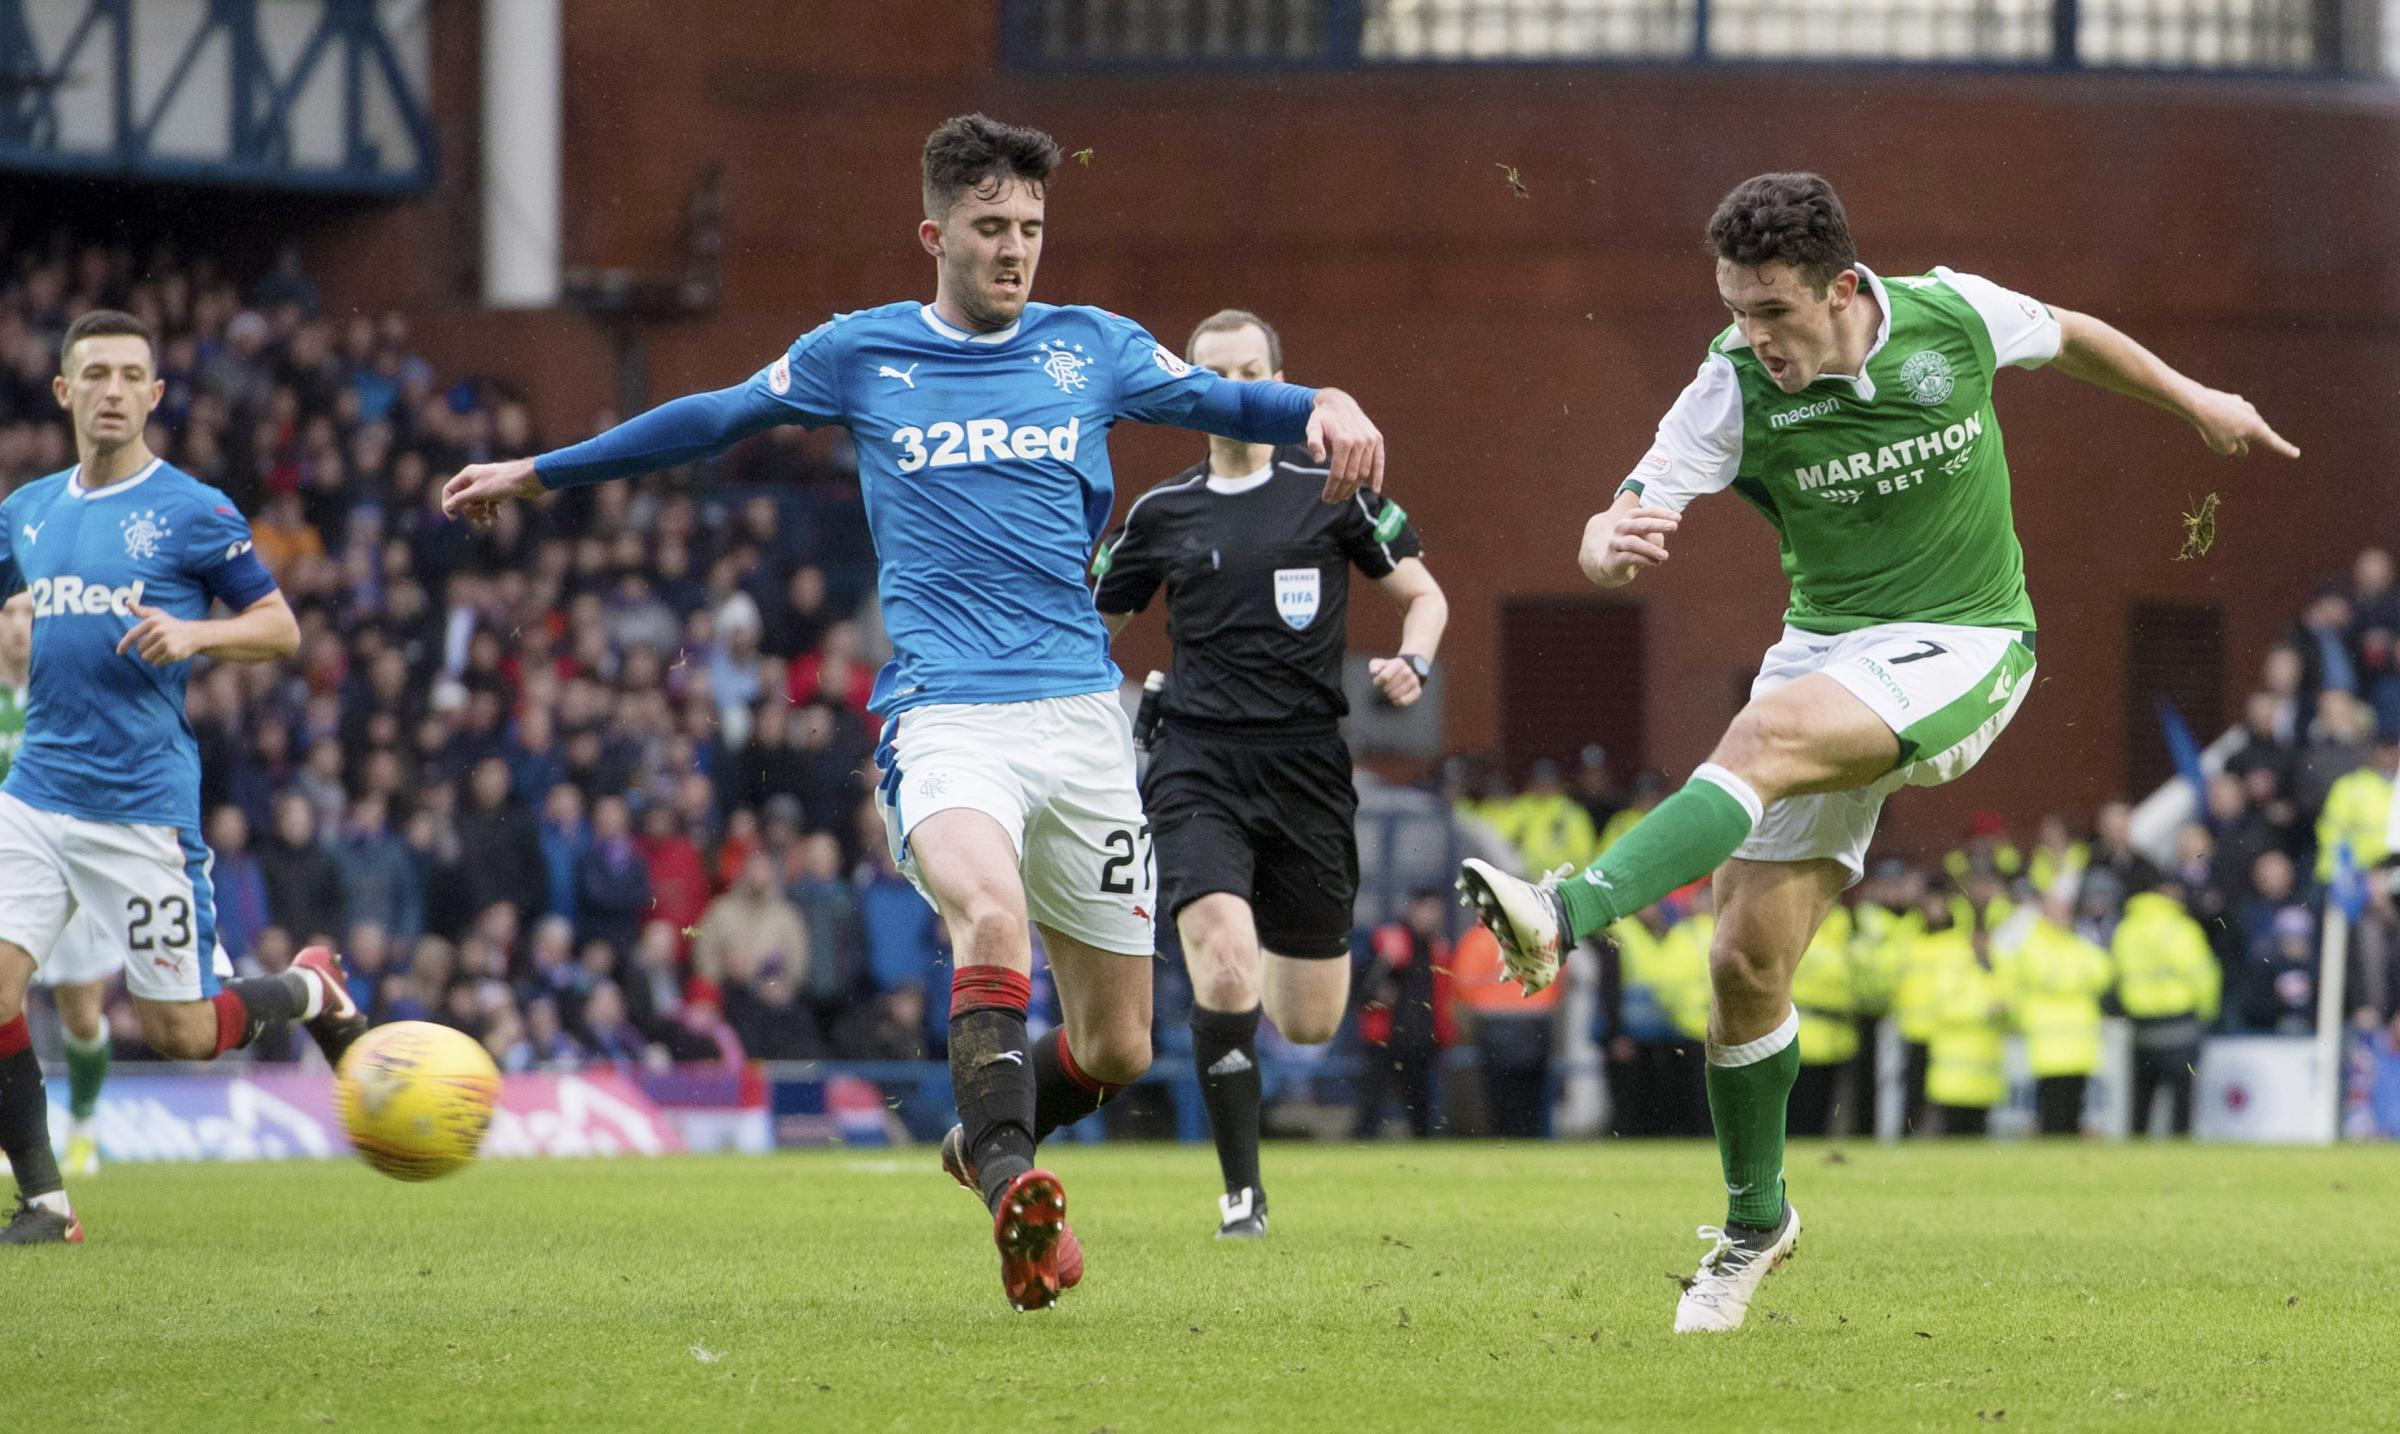 Hibernian's John McGinn goal and performance at Ibrox impressed his manager Neil Lennon